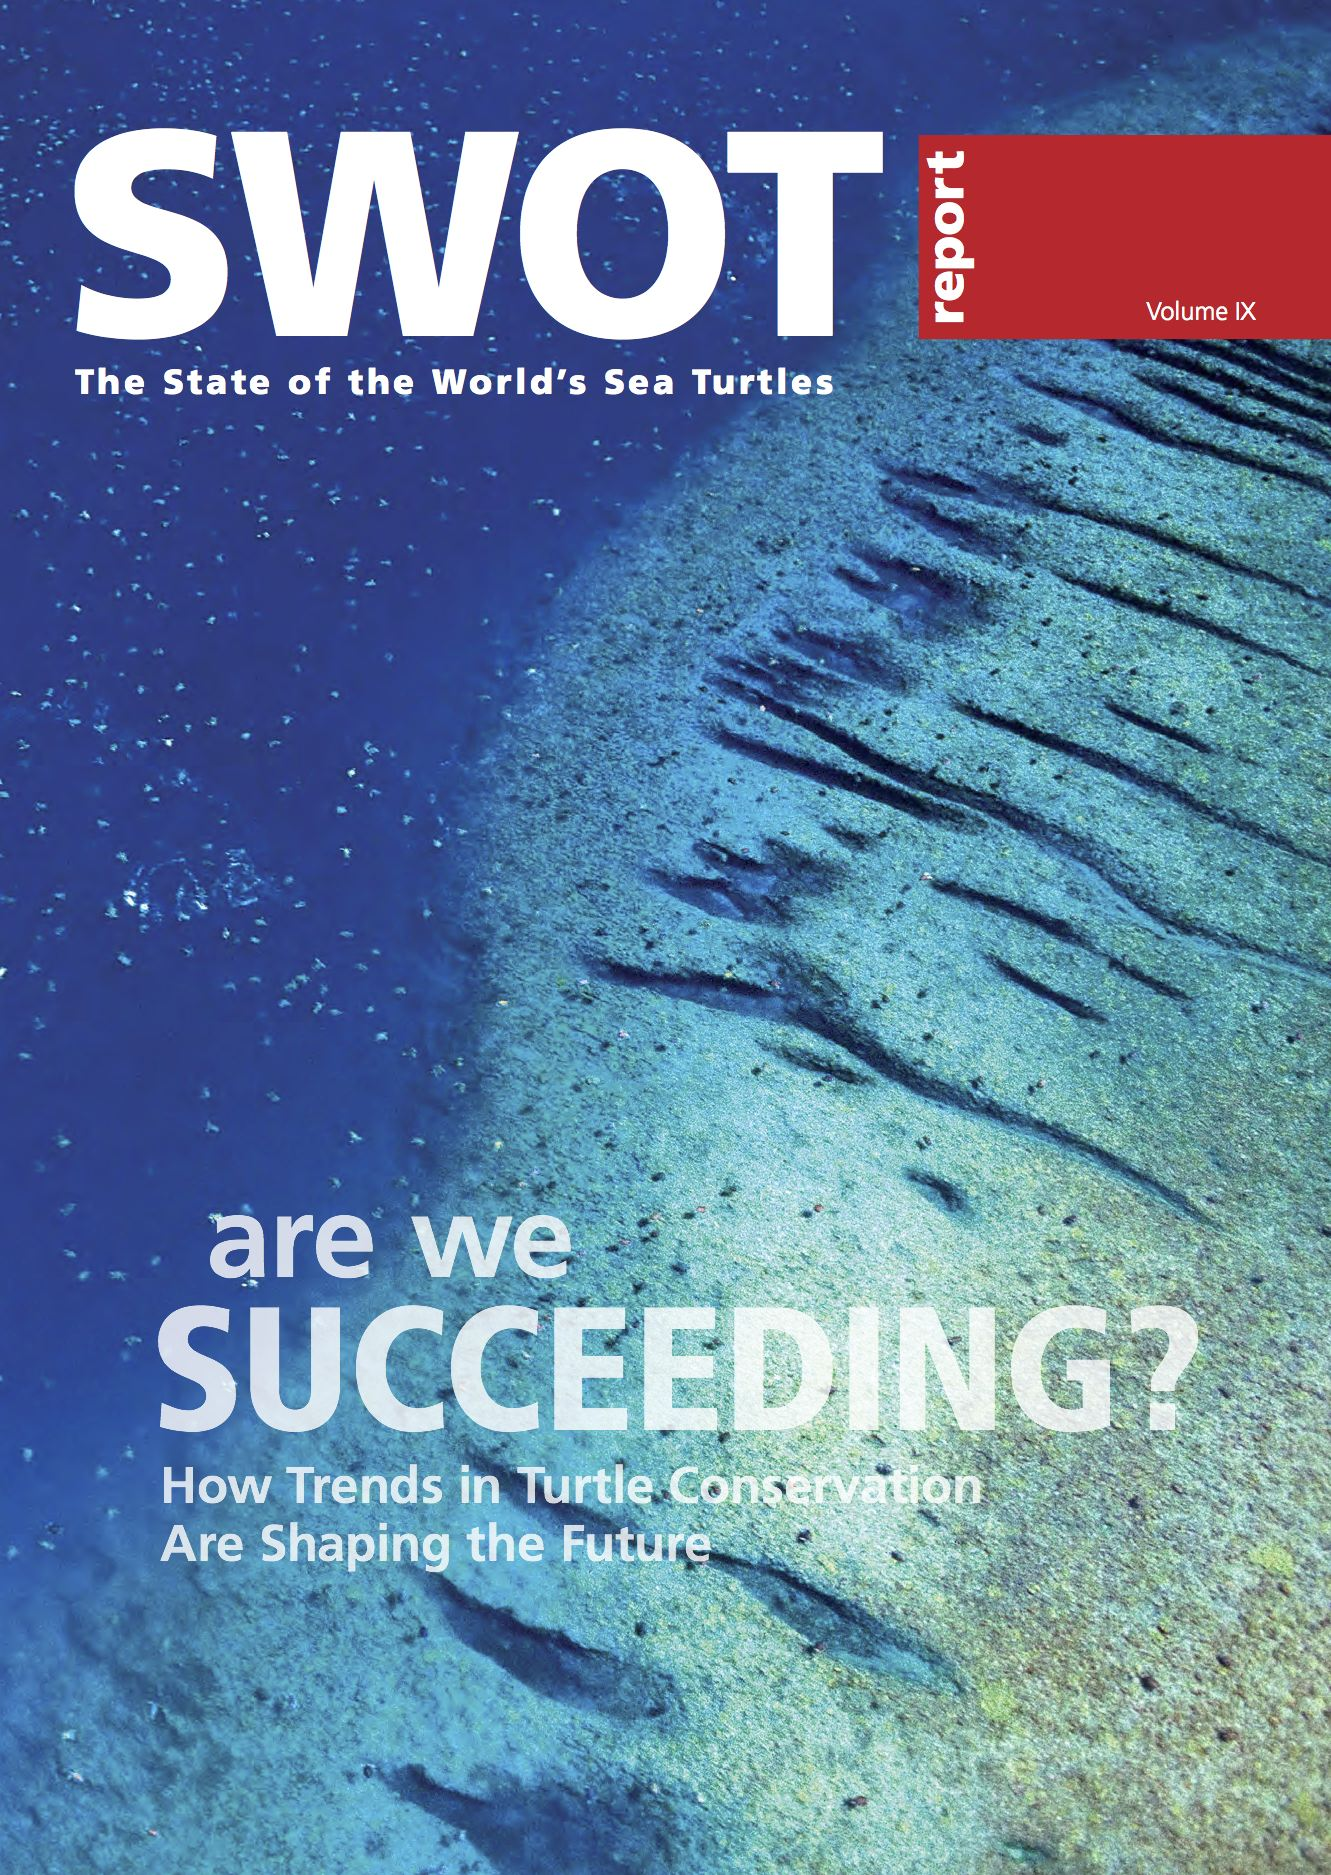 swot-9-cover-small.jpg